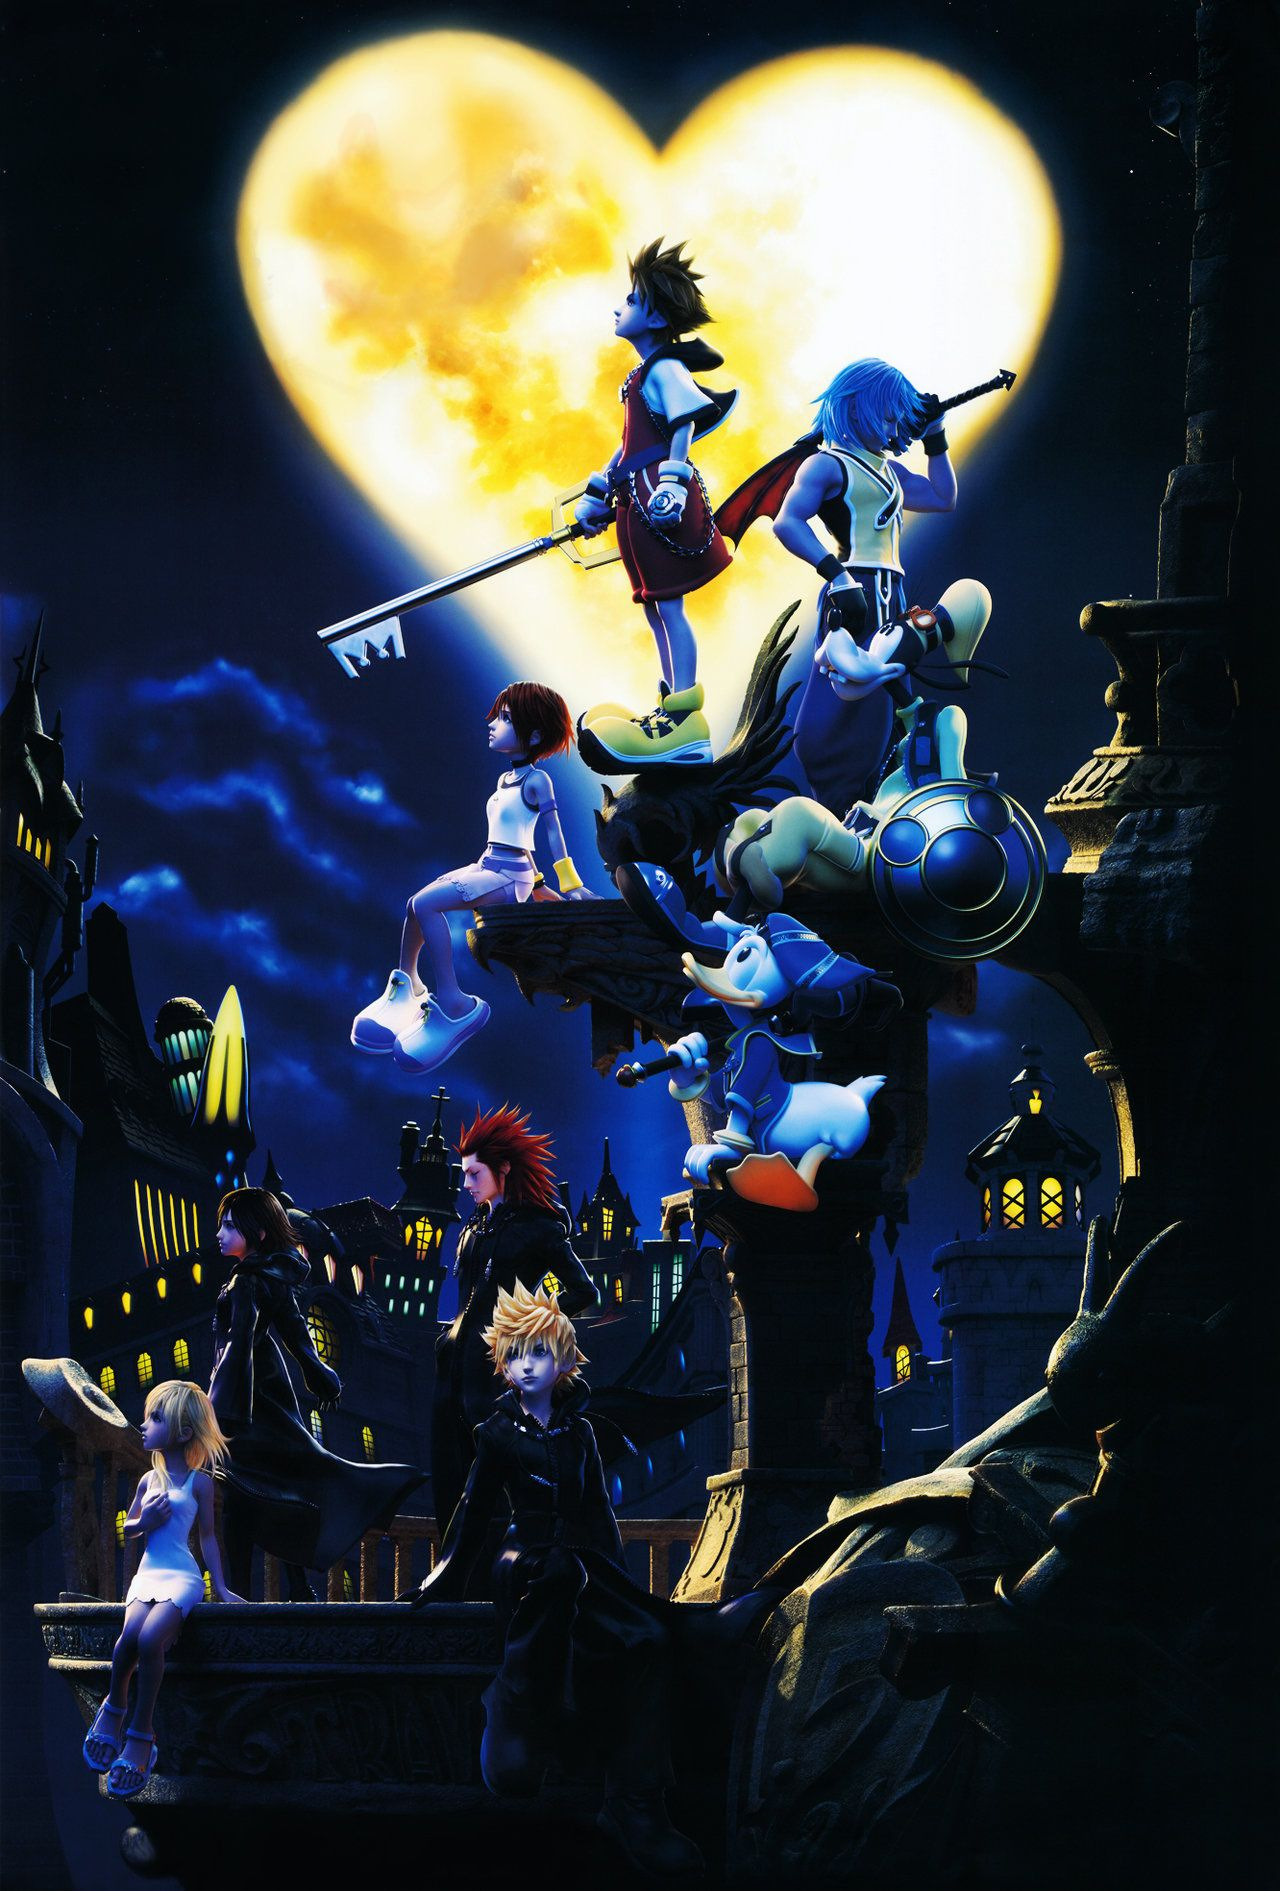 Kingdom Hearts Wallpapers Hd Wallpaper Cave Kingdom Hearts Wallpaper Kingdom Hearts Ii Kingdom Hearts 1